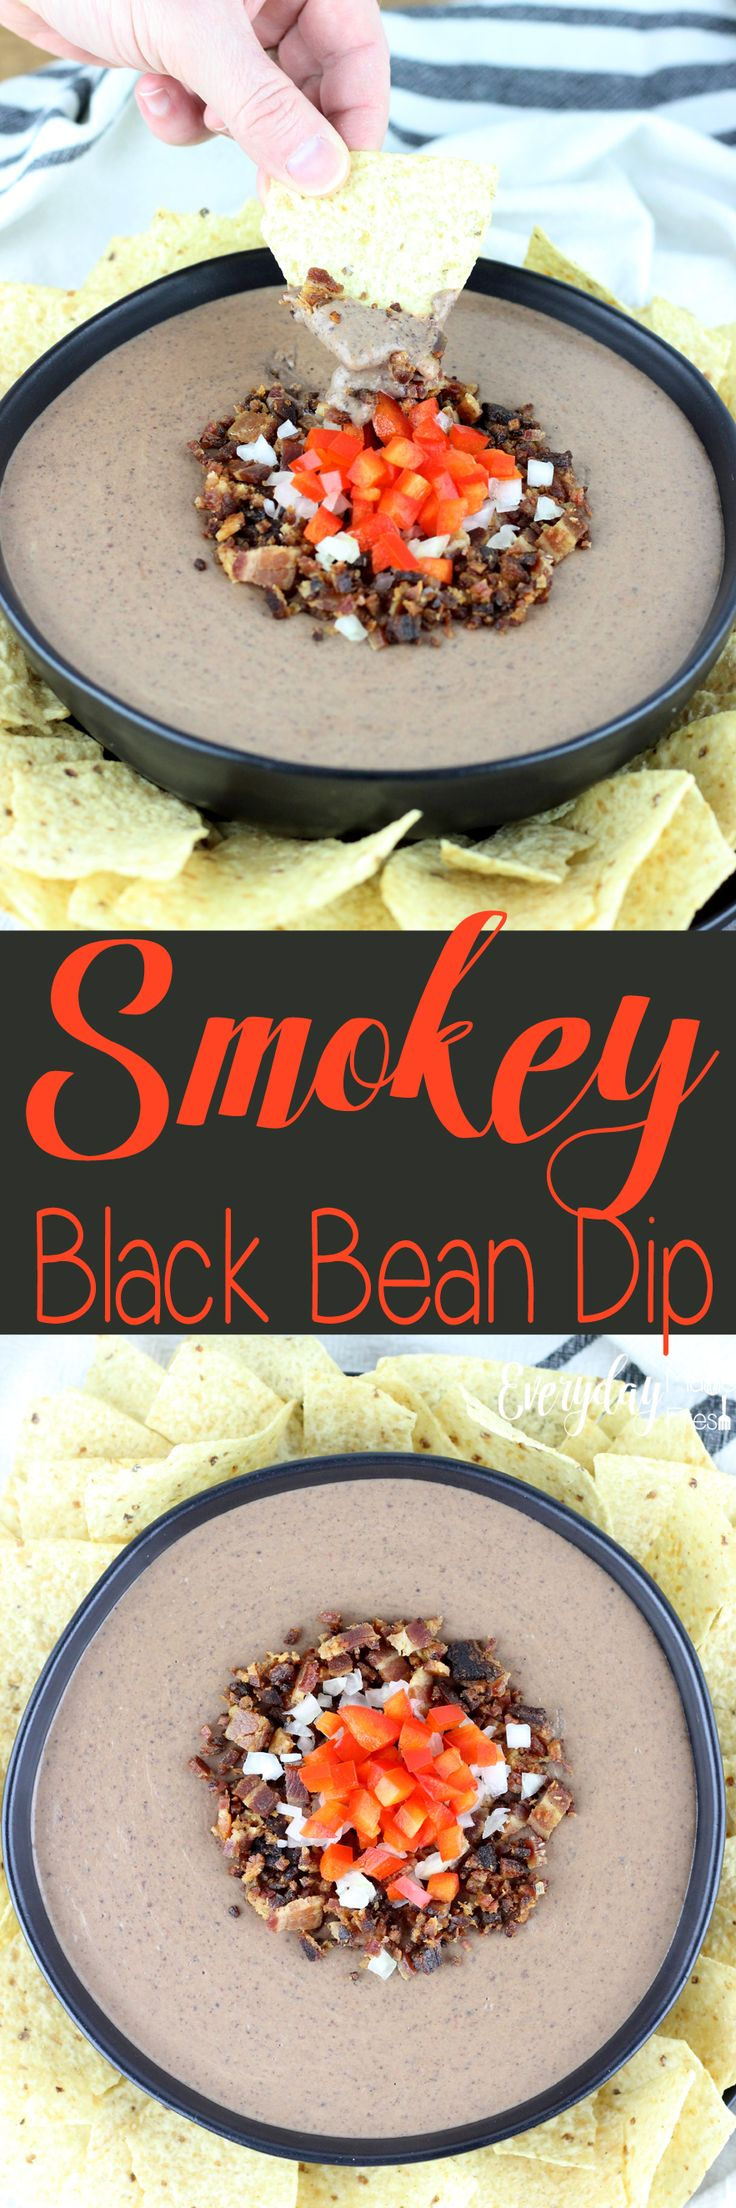 This Smokey Black Bean Dip is simple to make, and only requires 10 ingredients! It's creamy, smokey, and spicy, everything you want in a black bean dip! This dip is made for holidays, parties and tailgating.   EverydayMadeFresh.com http://www.everydaymadefresh.com/smokey-black-bean-dip/